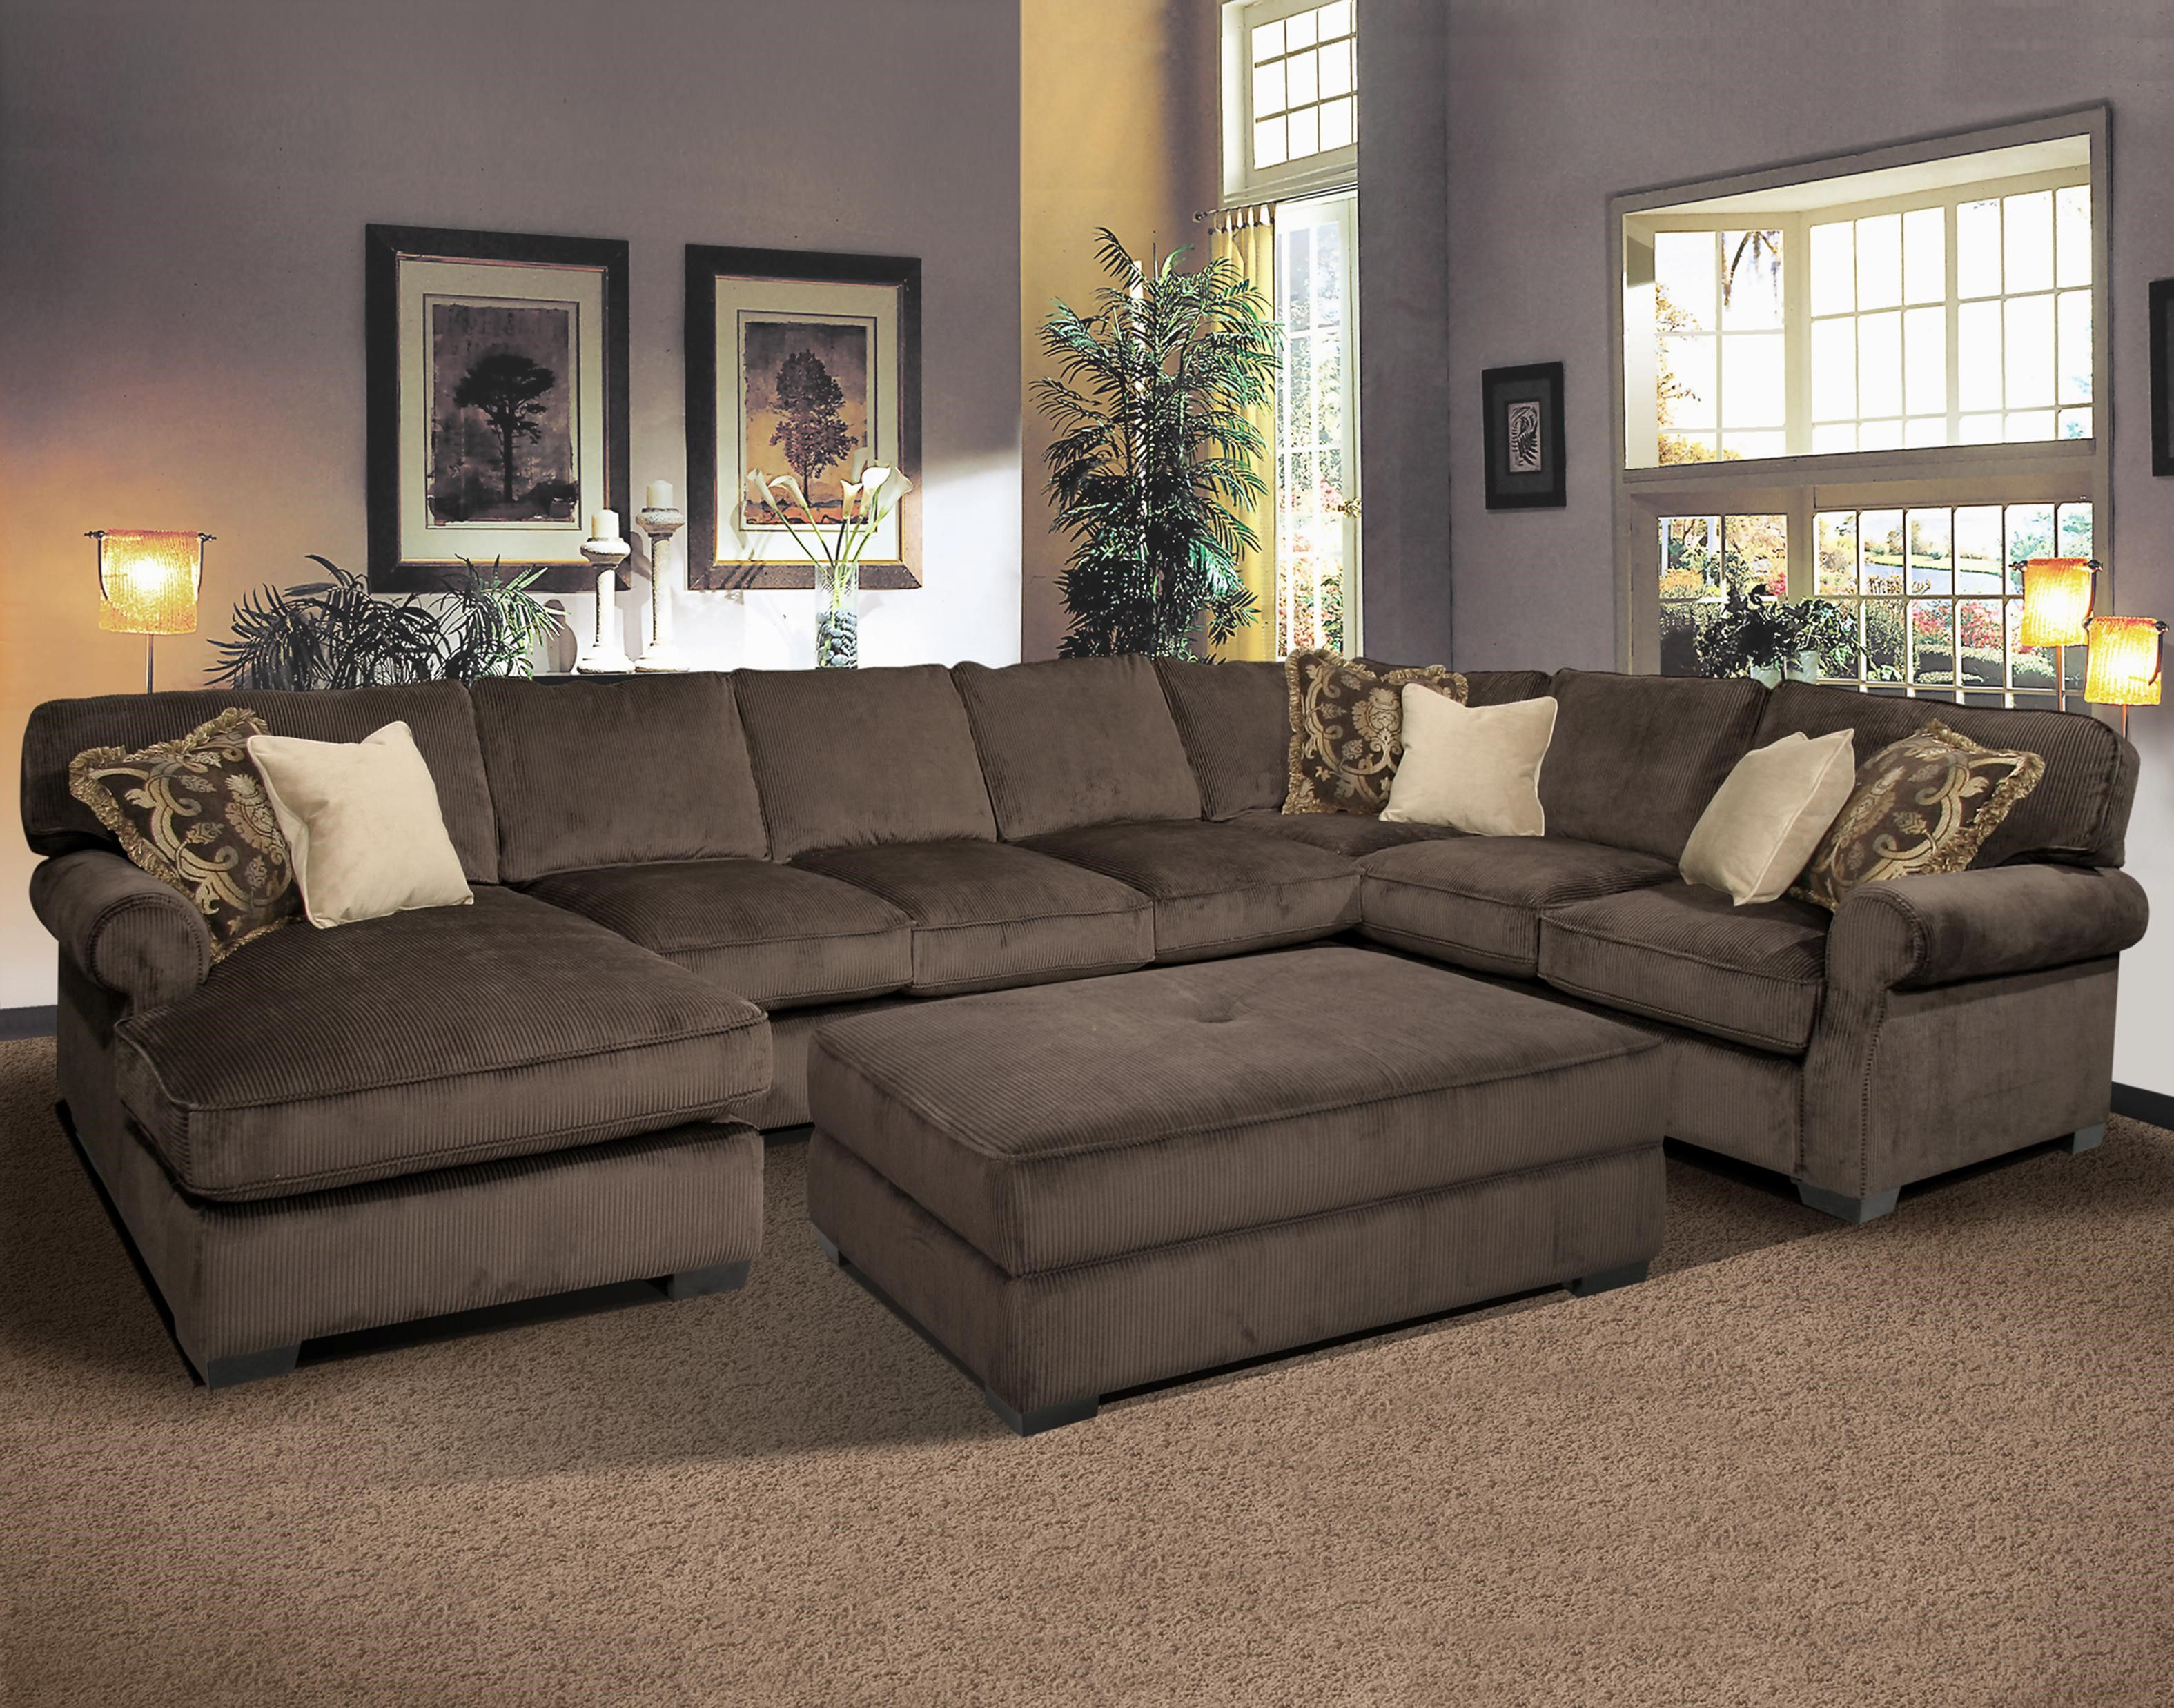 overstuffed living room furniture. Comfortable Living Room Sofas Design with Elegant Overstuffed Couches  Sales